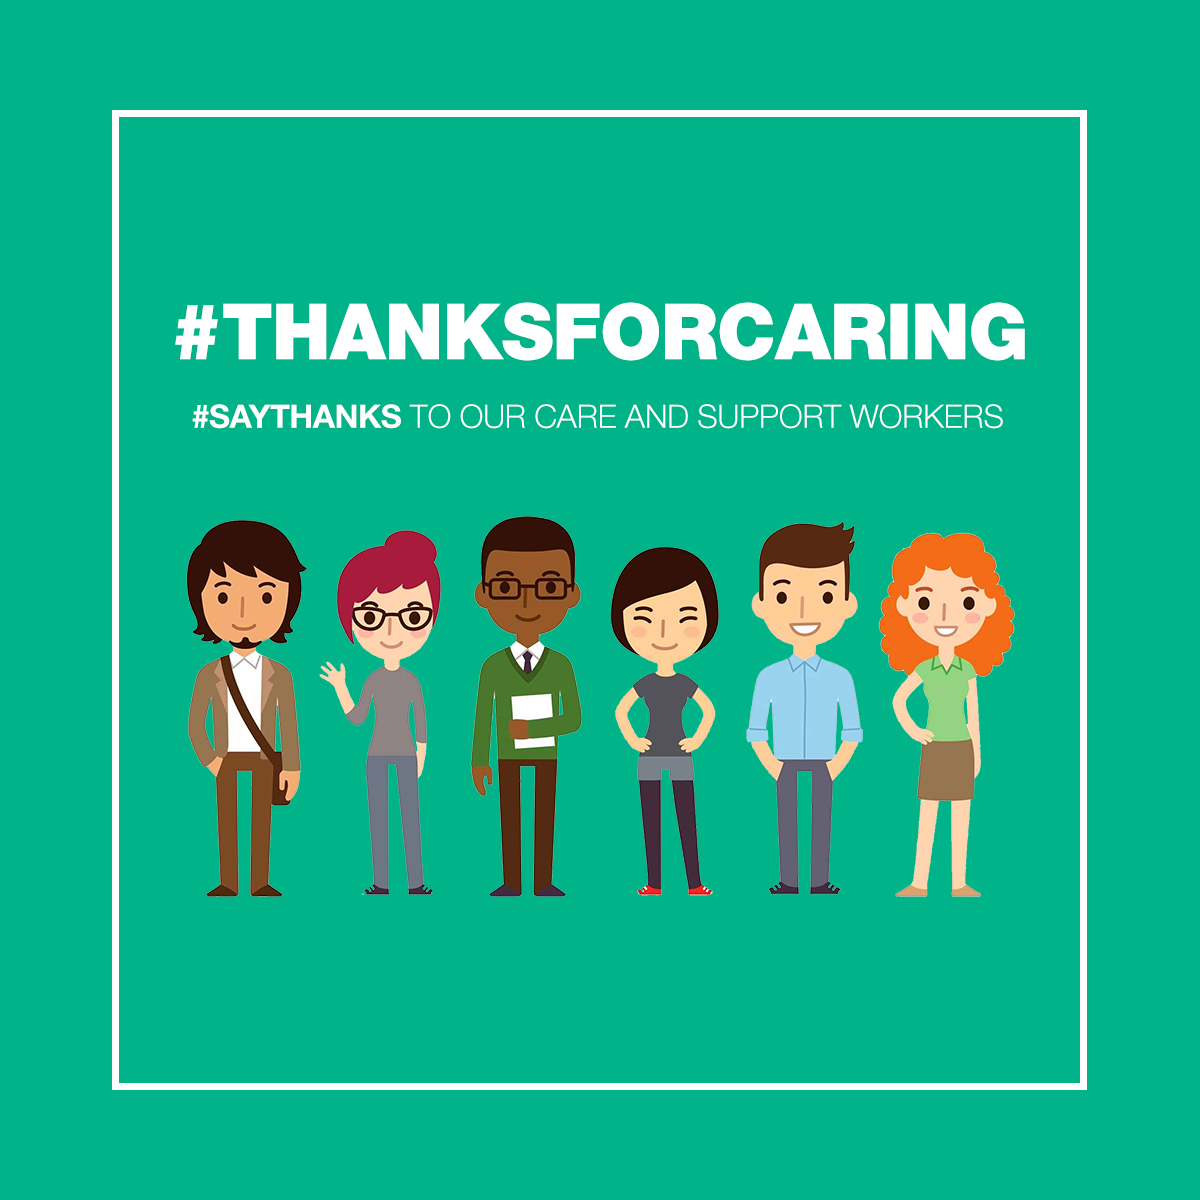 Say thanks to our care and support workers. #ThanksForCaring #SayThanks